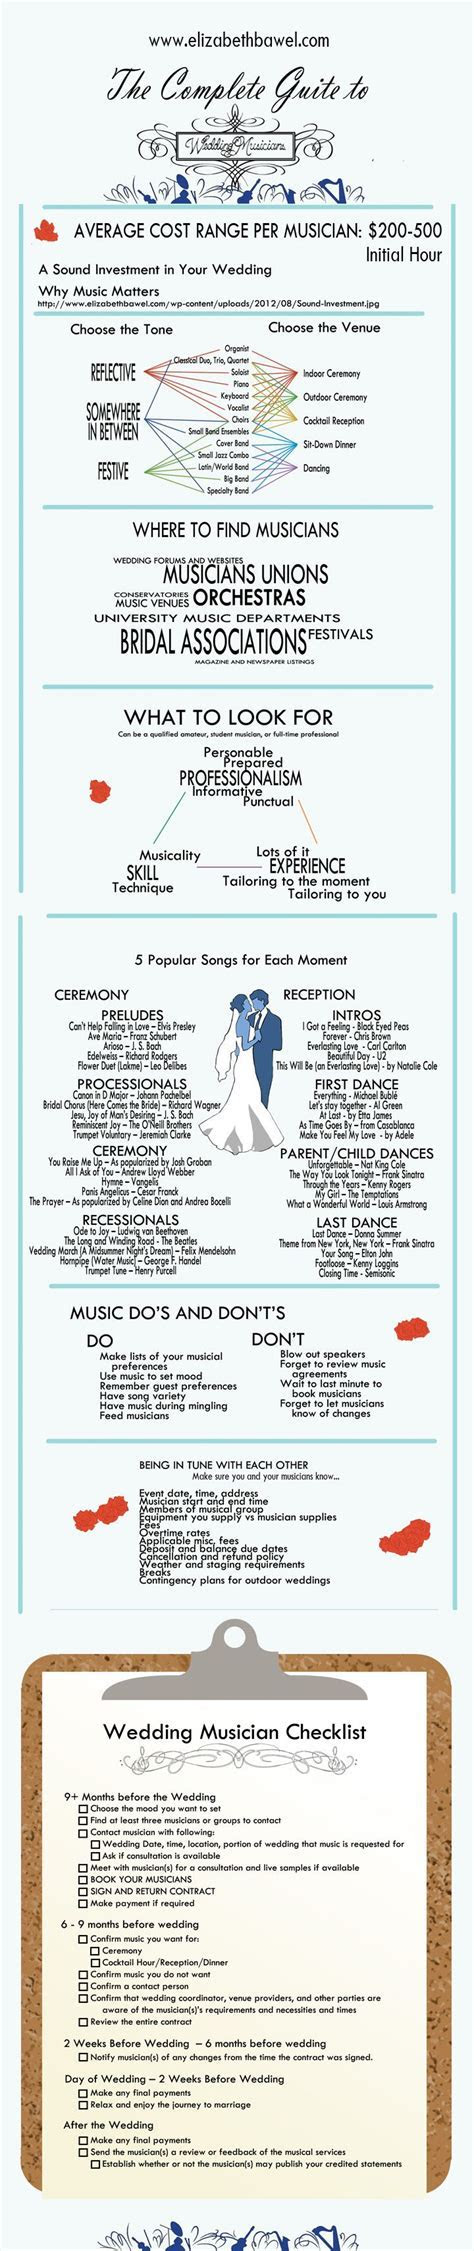 86 best images about Wedding Infographics on Pinterest